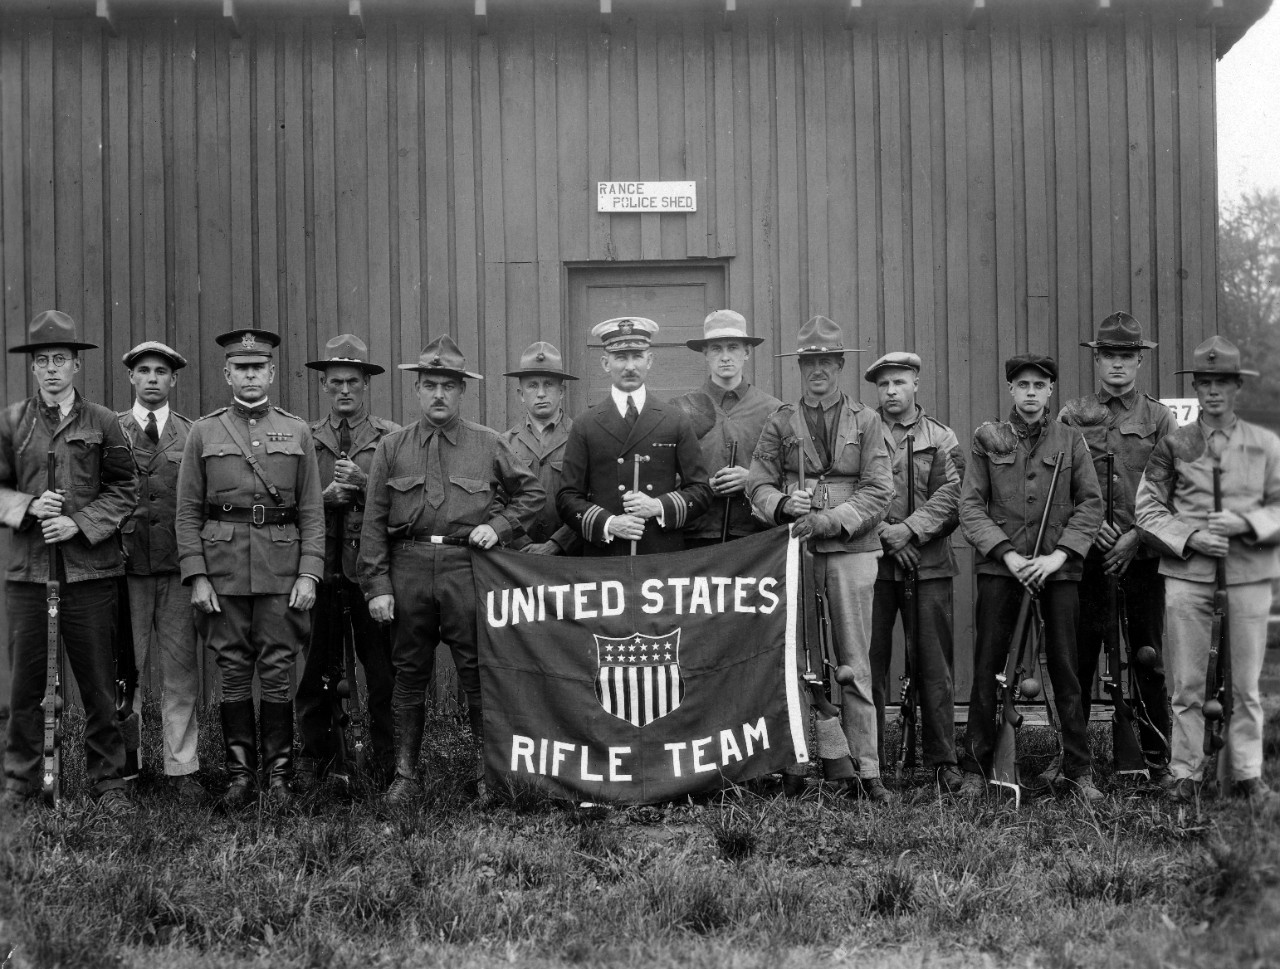 Approximately 50 photographs from Carl T. Osburn who was an Olympic and international rifle champion, donated to the Naval Historical Foundation by his wife in 1967. Depicted are personnel from U.S. rifle teams in which he participated from c.1912-1924, including Olympic Games. Also shown are shooting targets, personnel at the United States Naval Academy, and change of command ceremony USS Concord (CL-10) 1931. Some photos have been assigned NH numbers or were removed to the NH collection. Souvenir album transferred to Navy Department Library.